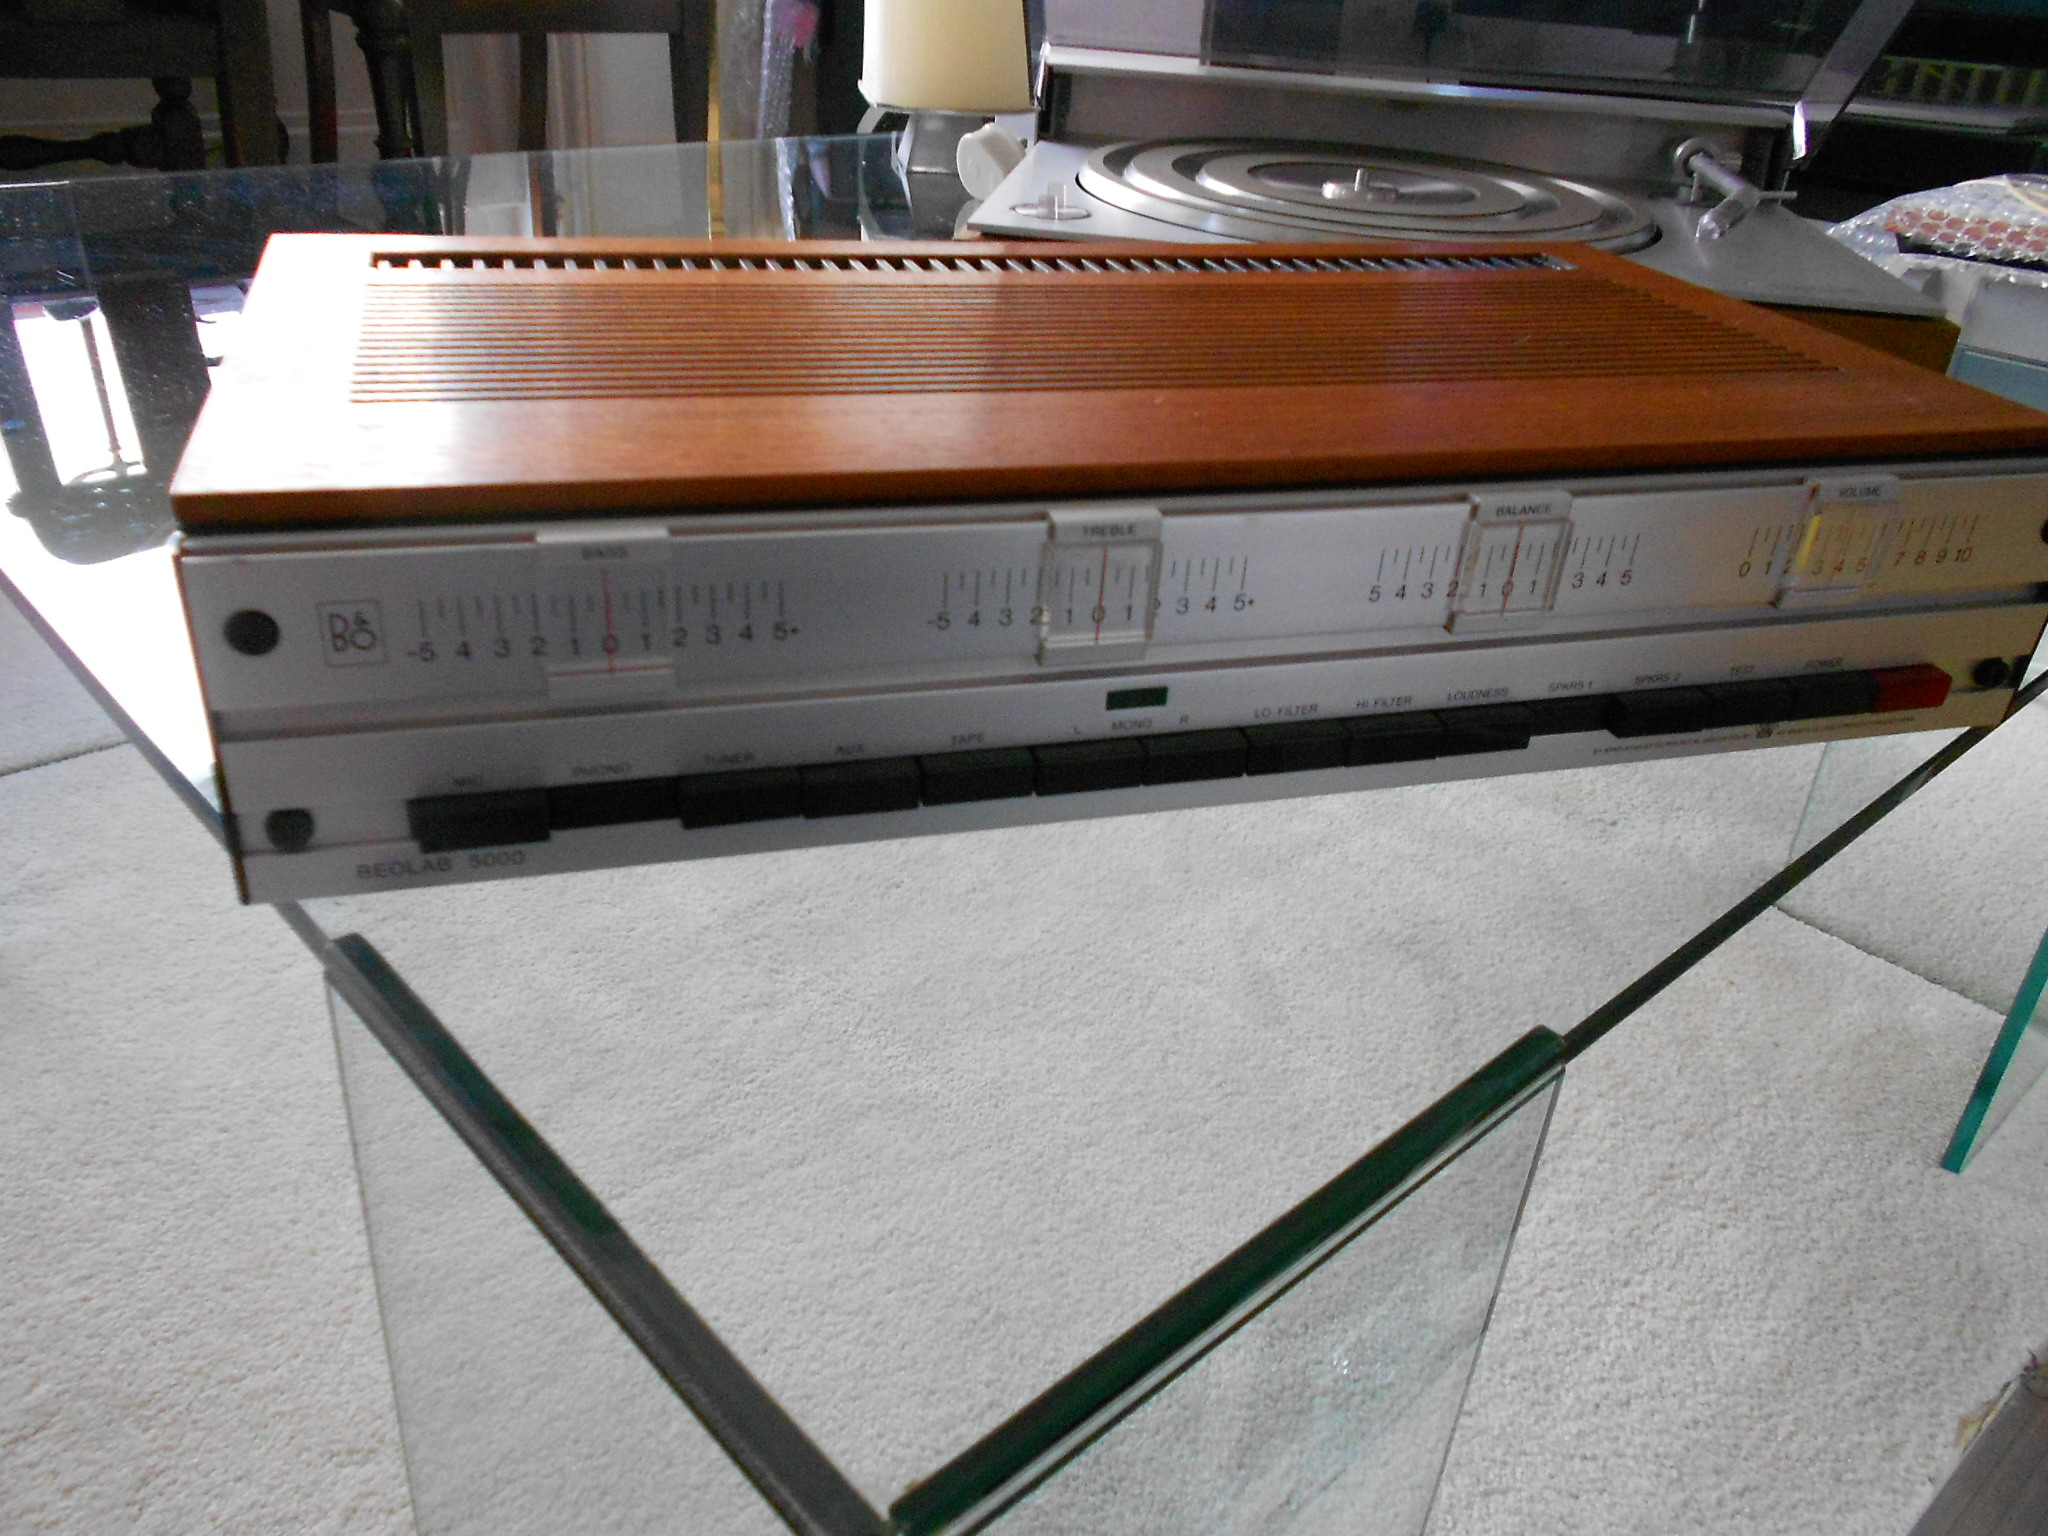 Bang and Olufsen Beolab 5000 amplifier